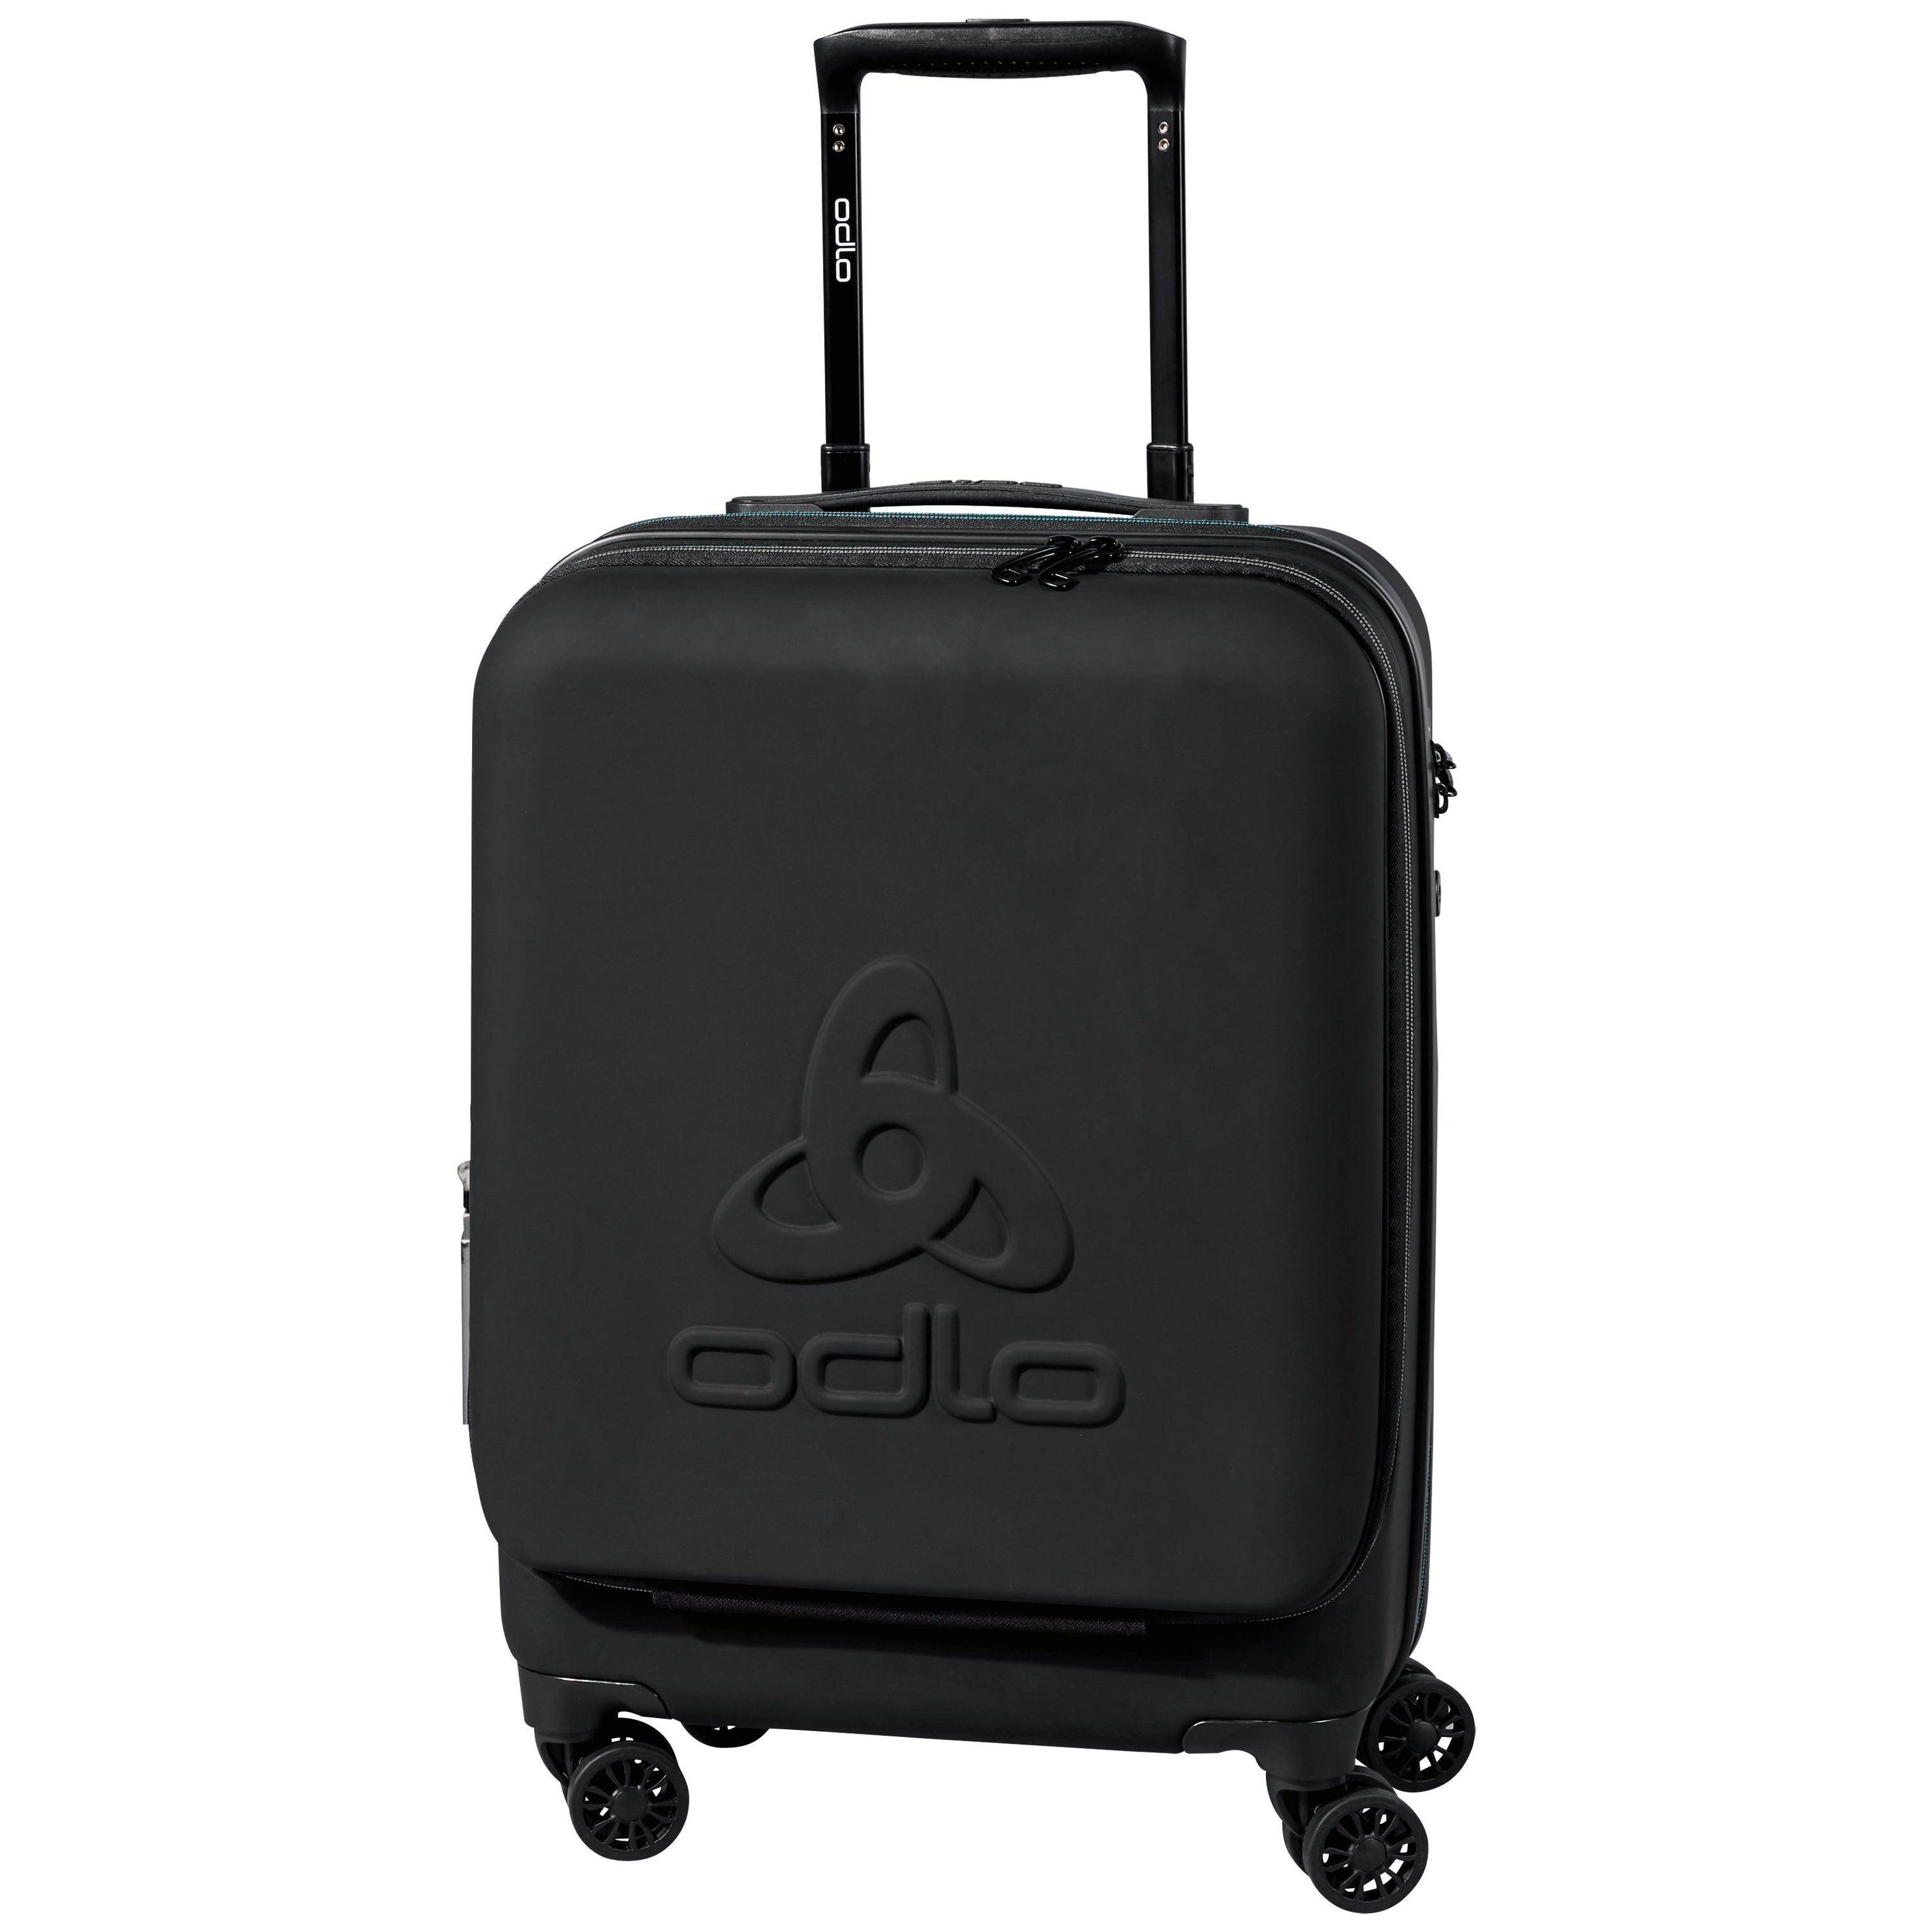 Odlo Bagage cabine à roulettes RW40 black taille: One Size